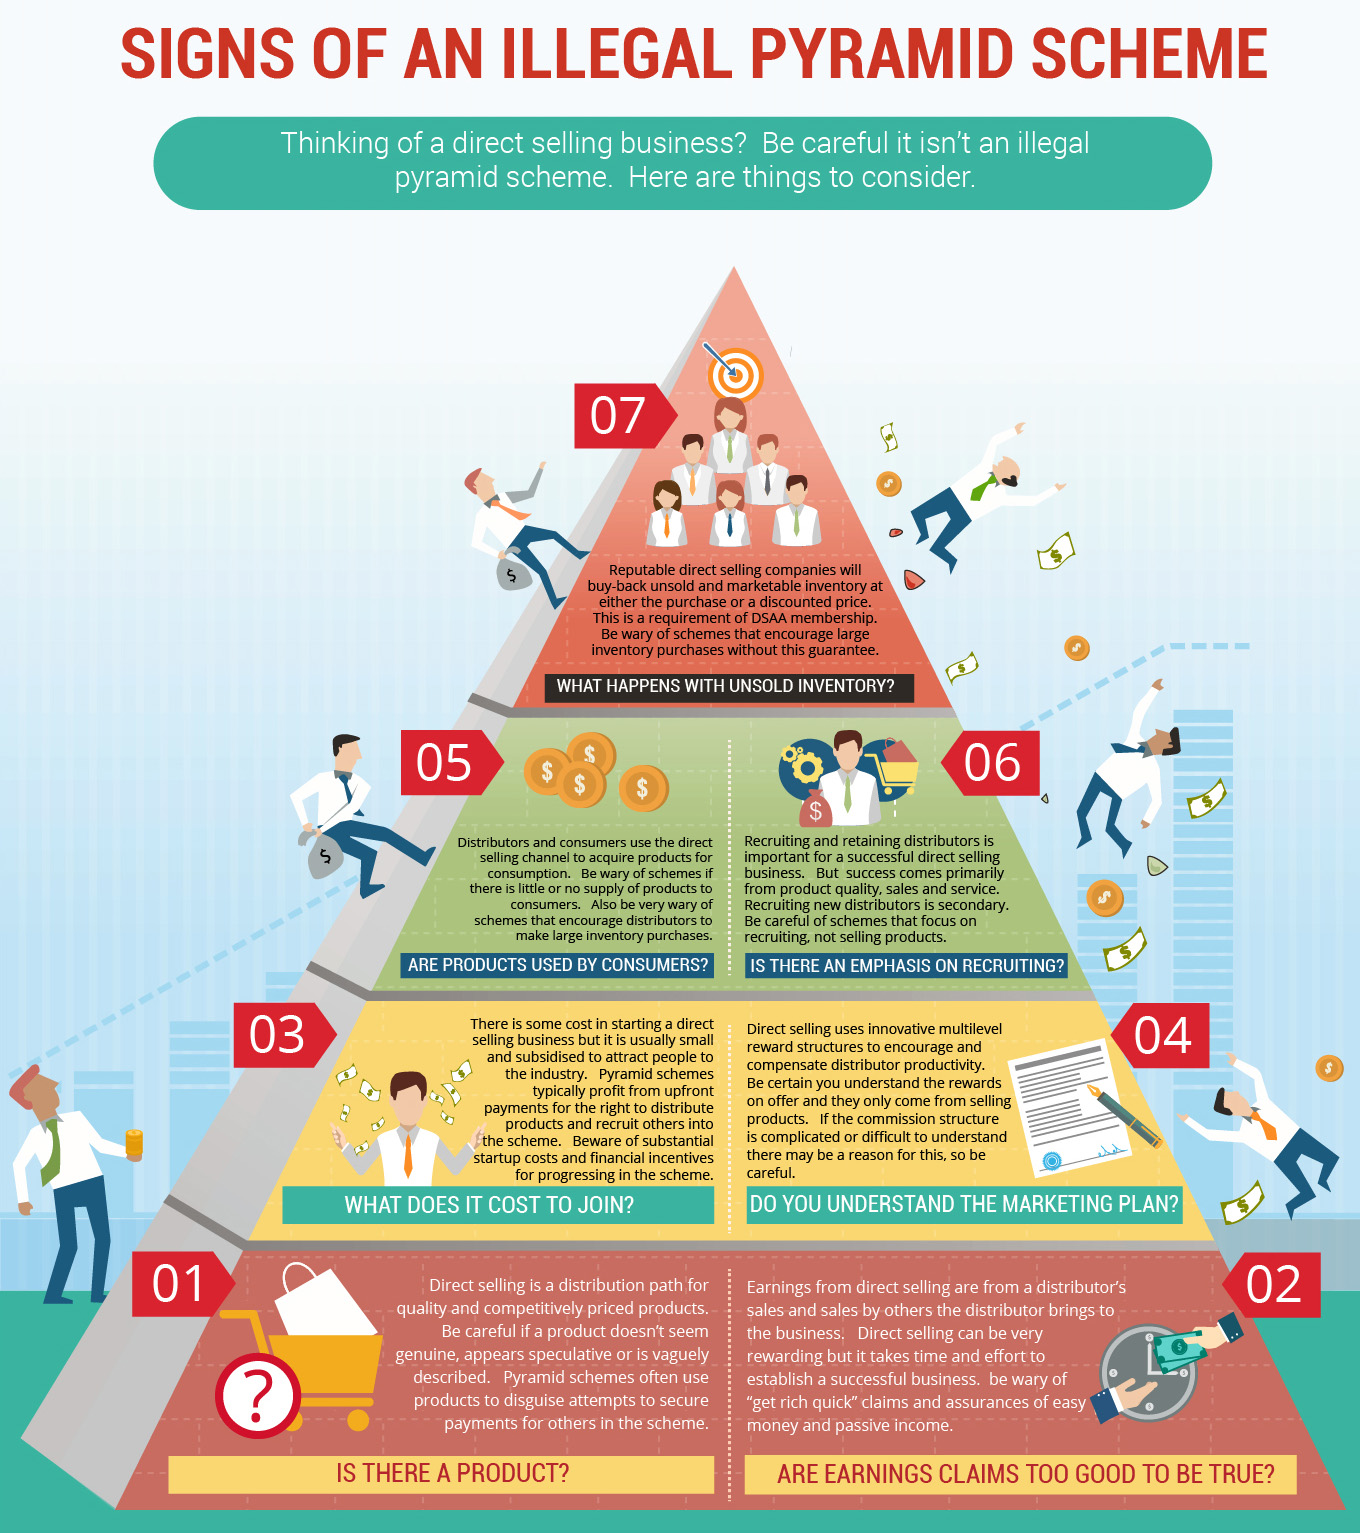 Are Pyramid Schemes Illegal?